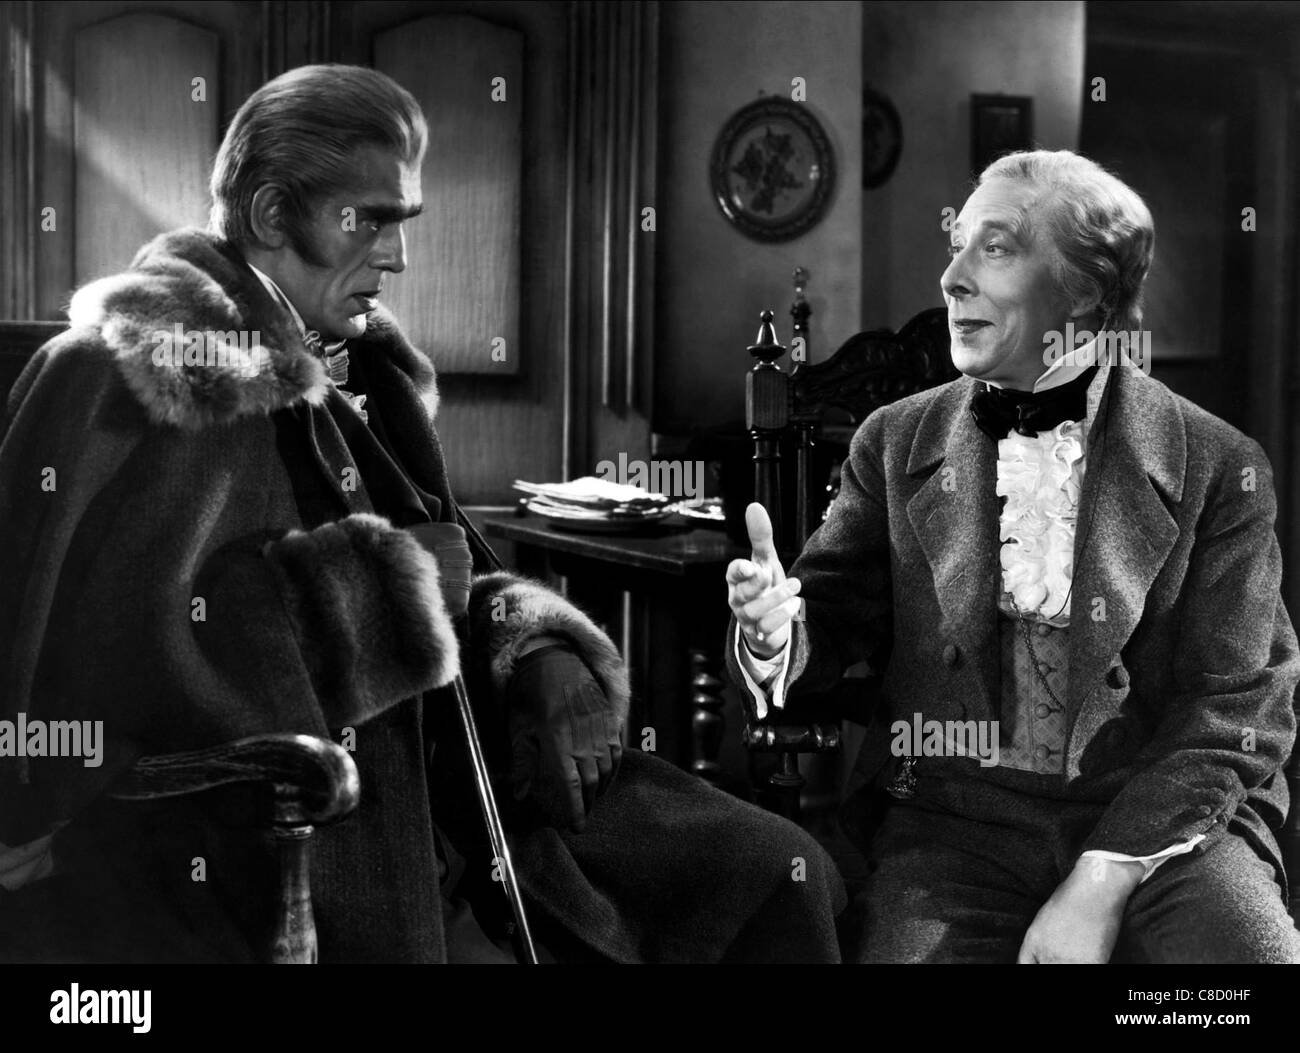 BORIS KARLOFF, GEORGE ARLISS, THE HOUSE OF ROTHSCHILD, 1943 - Stock Image